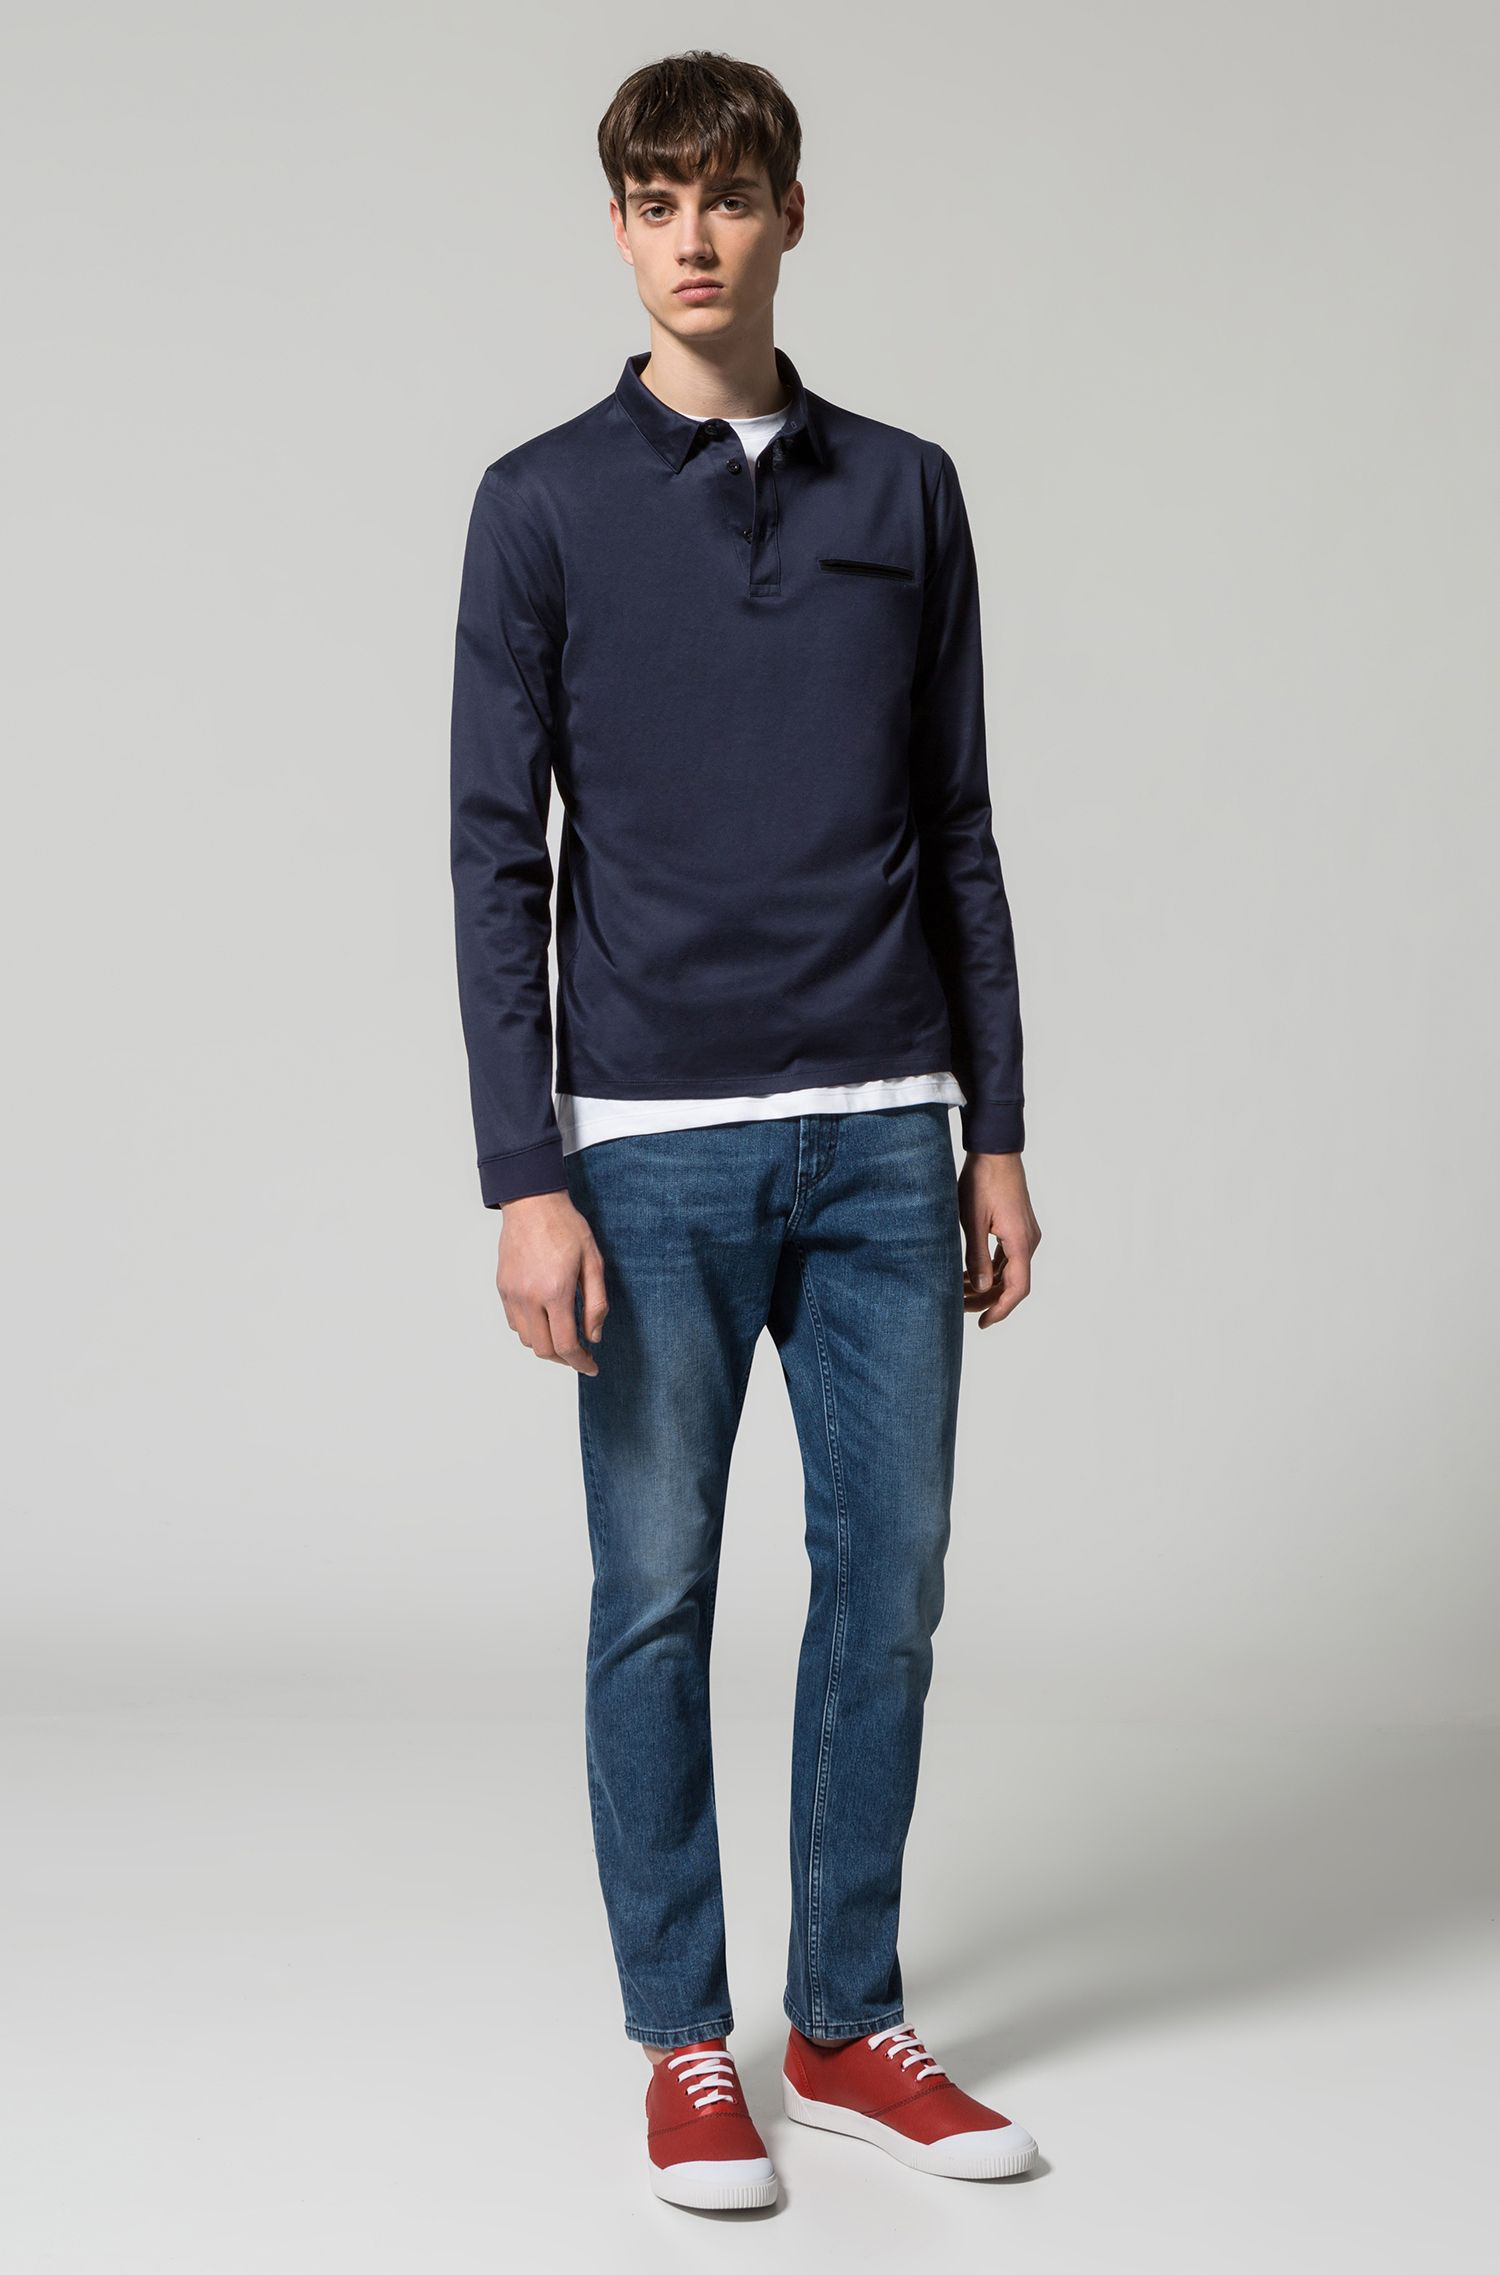 Long-sleeved cotton polo shirt with chest pocket